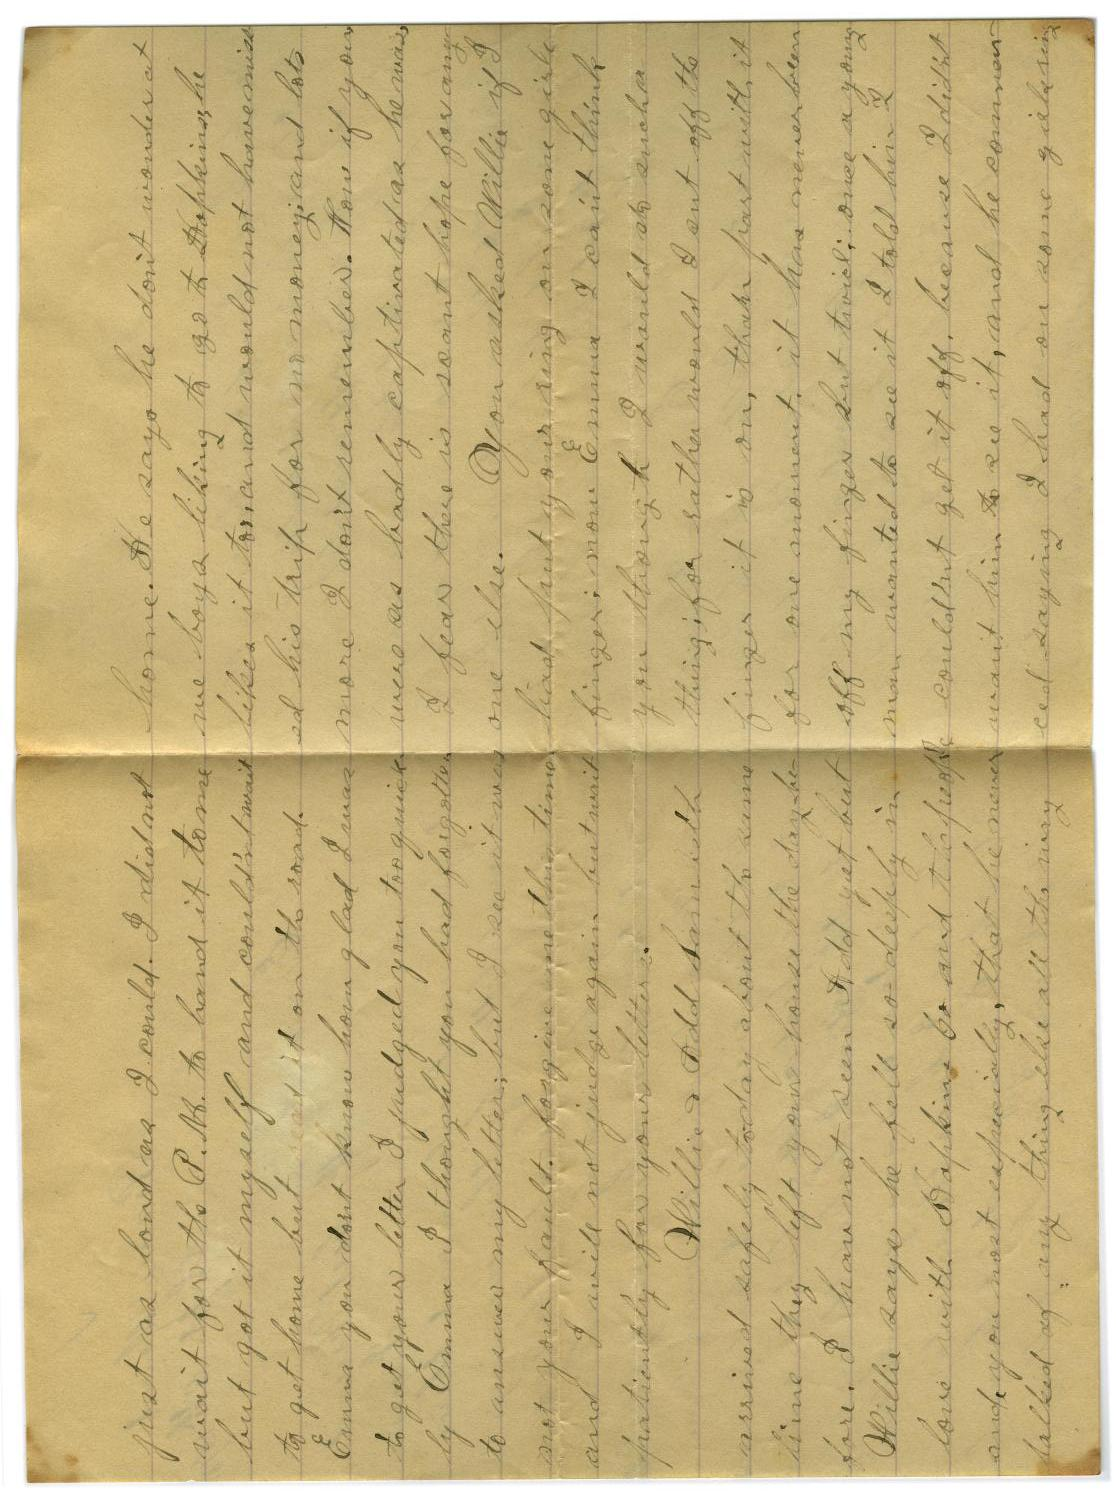 [Letter from John C. Brewer to Emma Davis, September 8, 1878]                                                                                                      [Sequence #]: 2 of 5